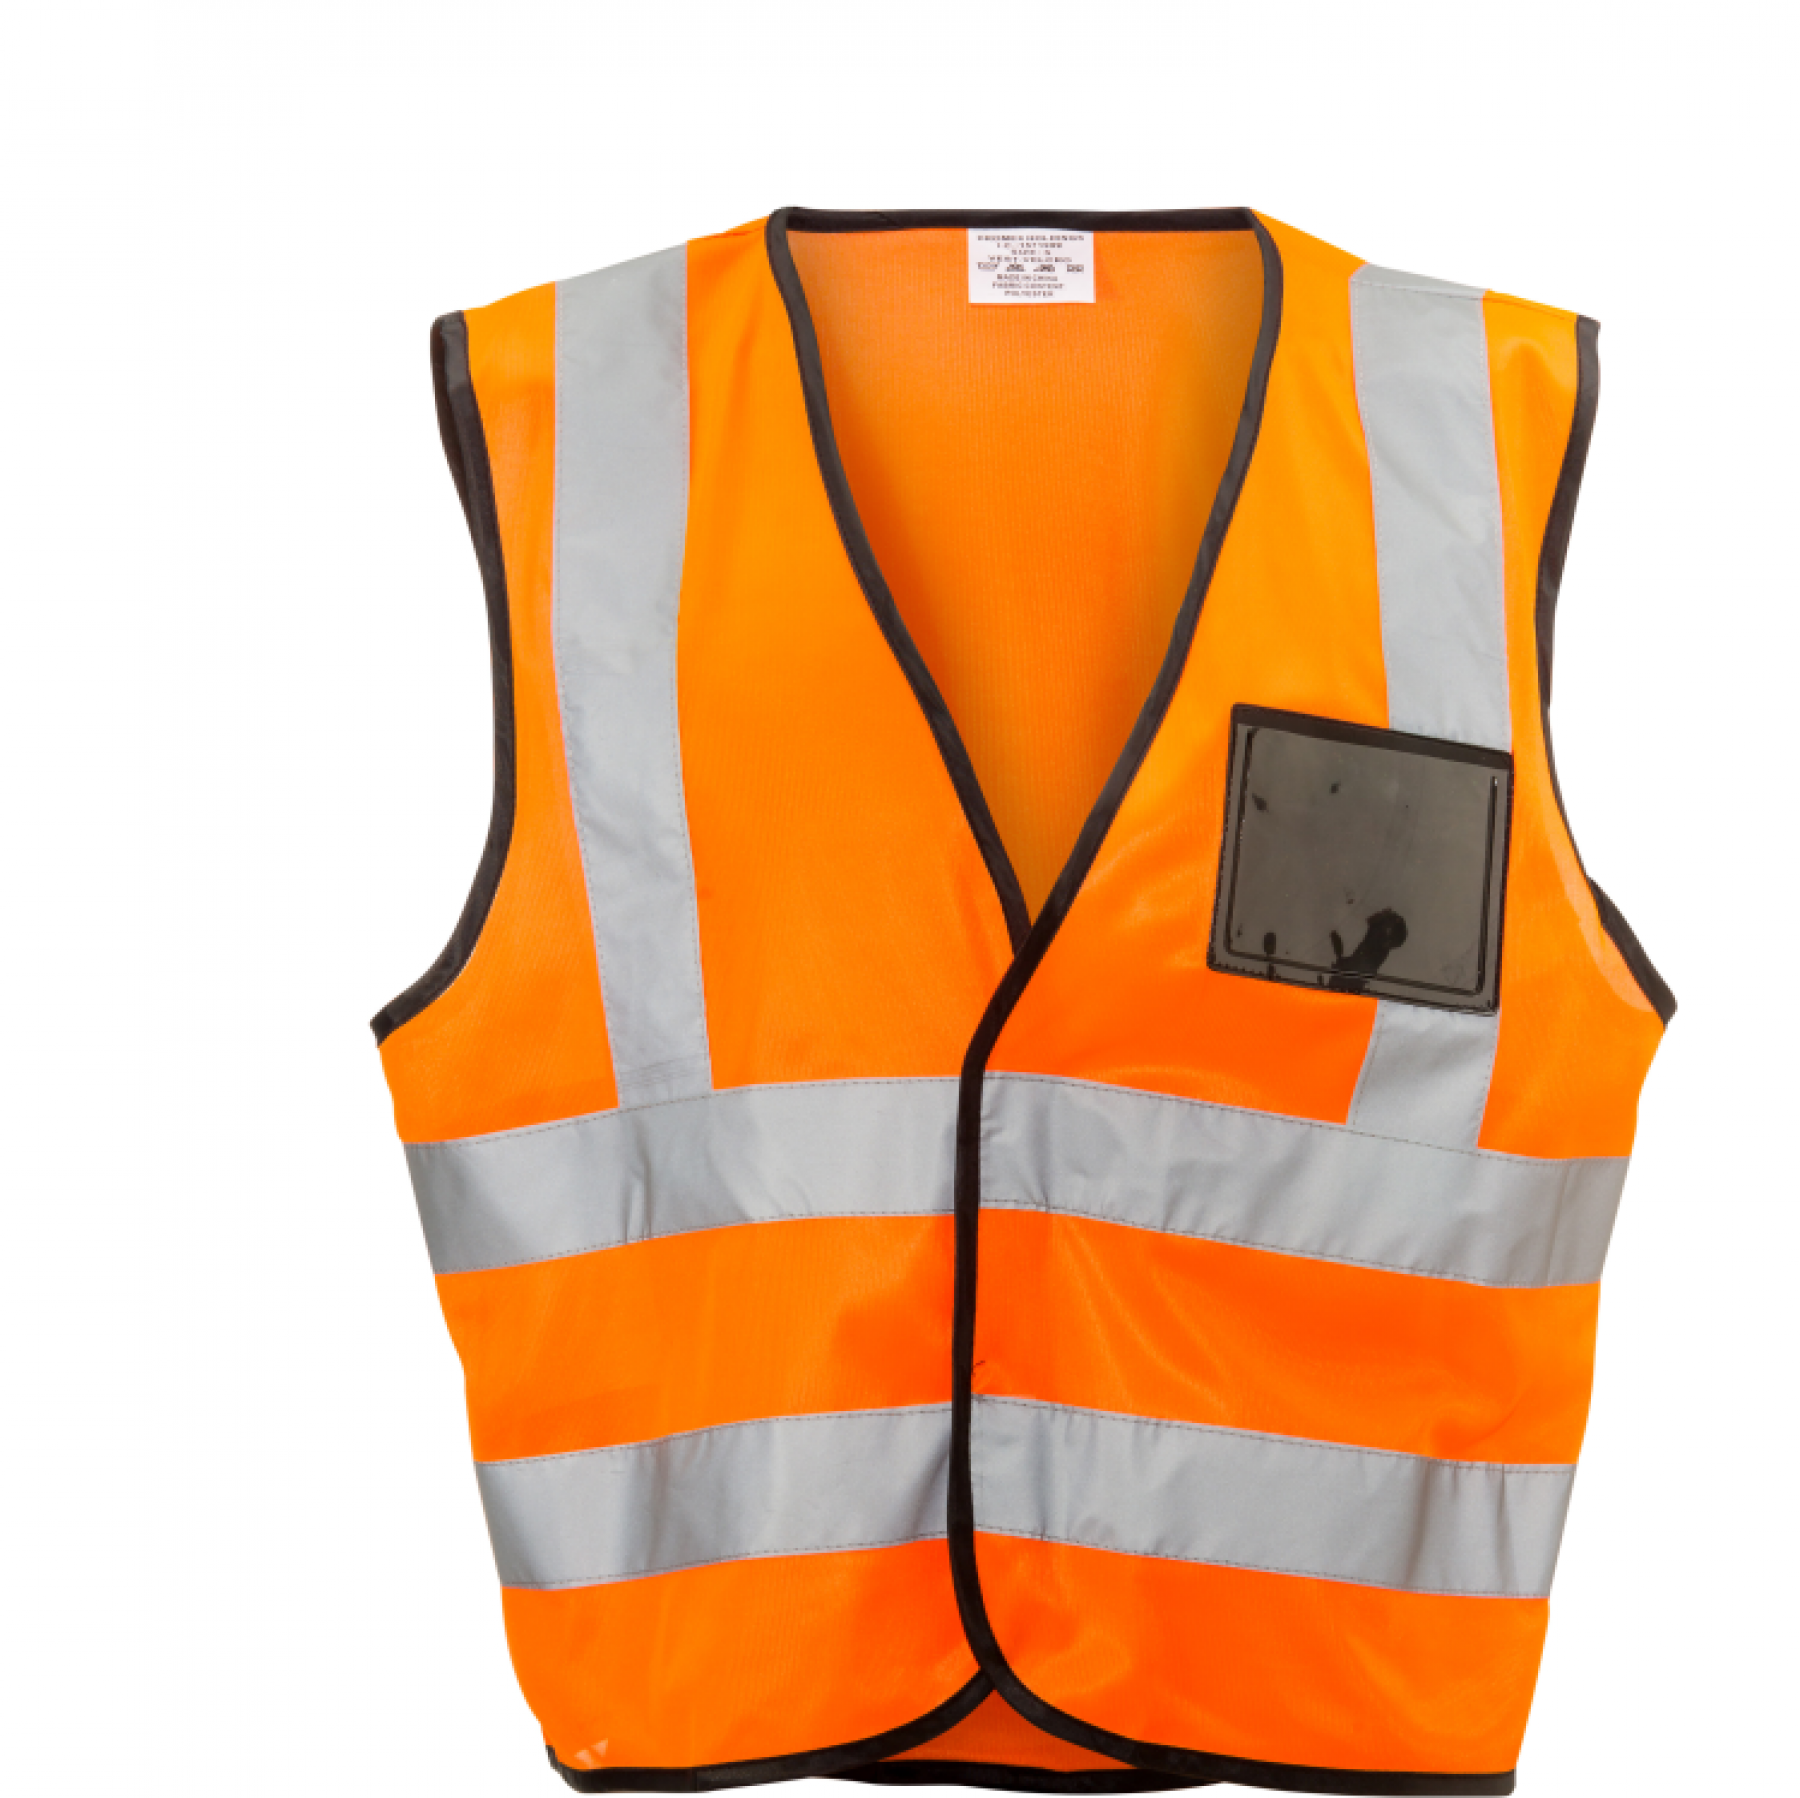 Orange Reflective Vest, Velcro, Id Pouch Small